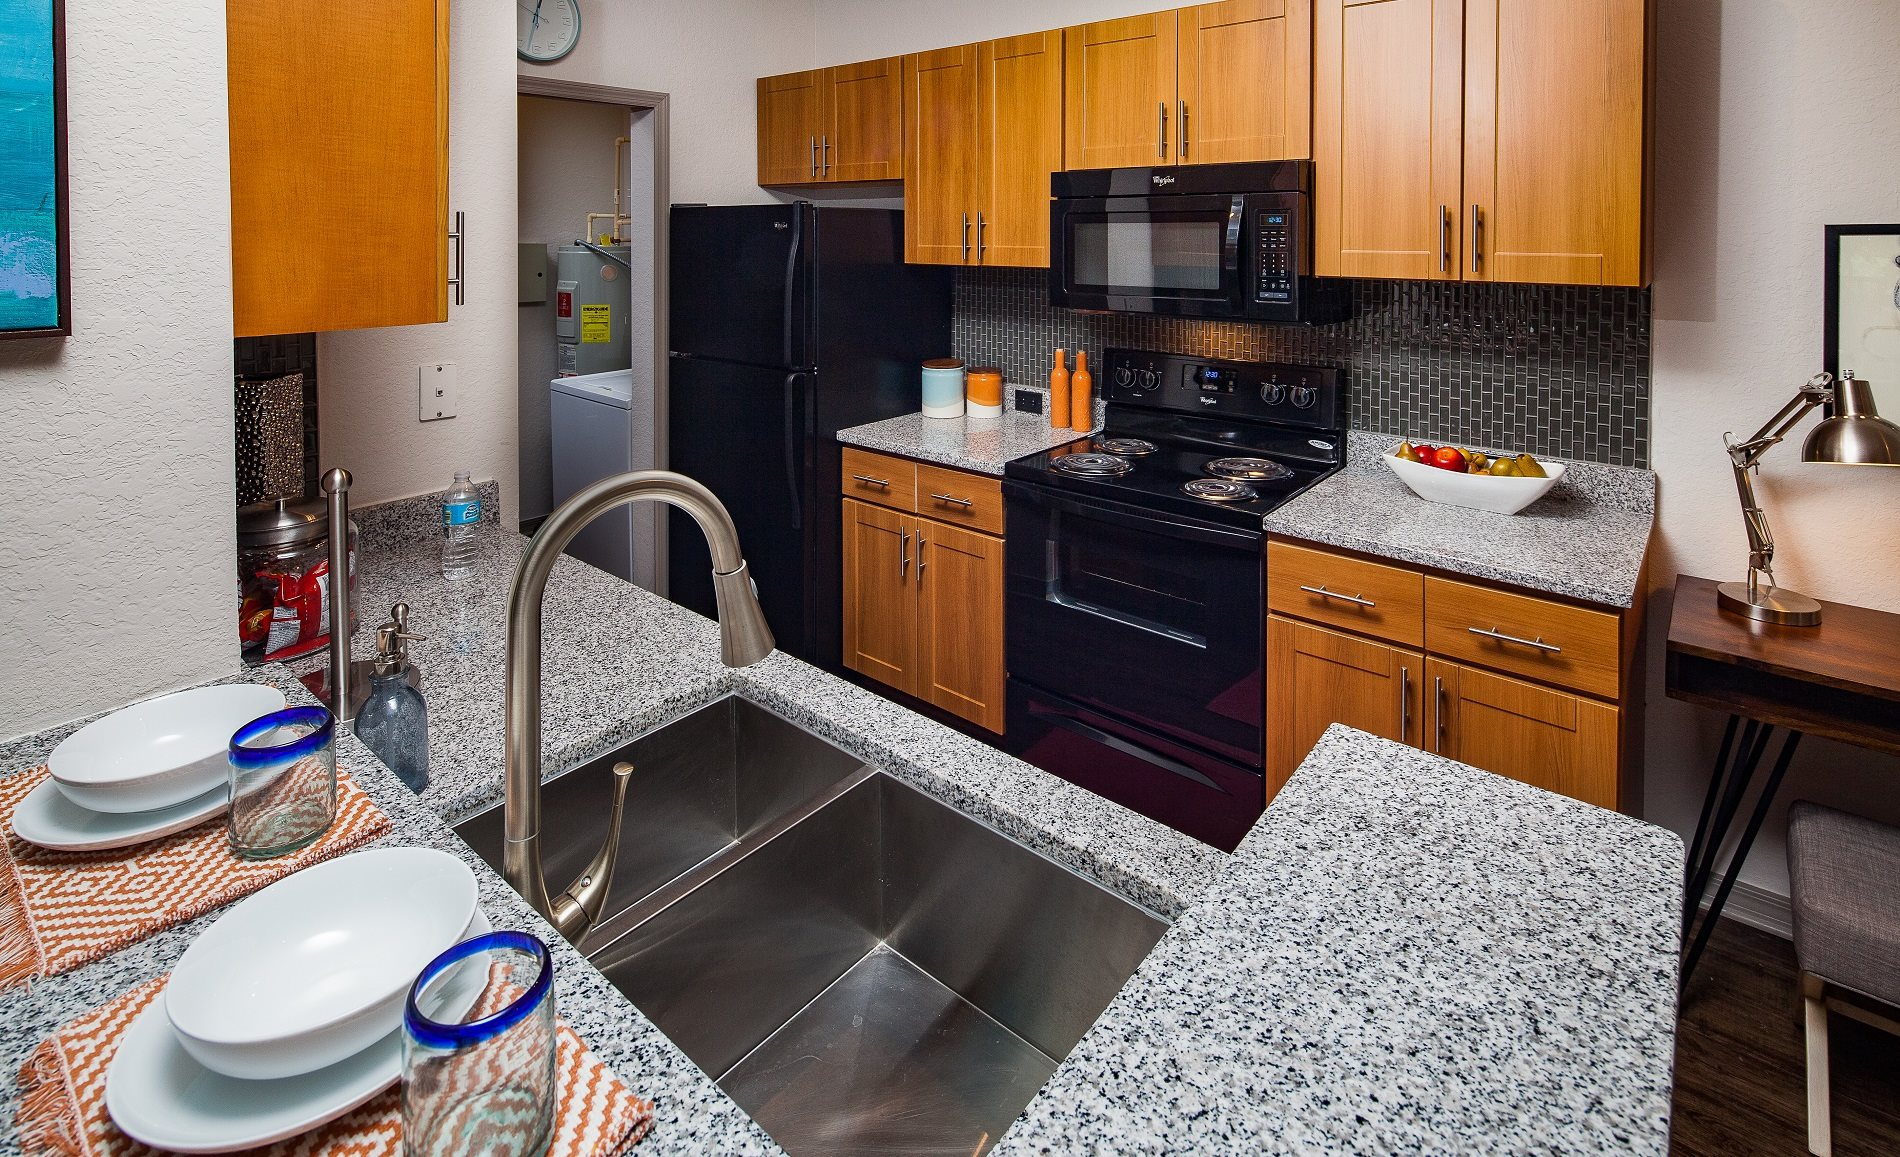 Gourmet kitchen with granite countertops at Legacy at Fort Clarke apartments in Gainesville, Florida 32606